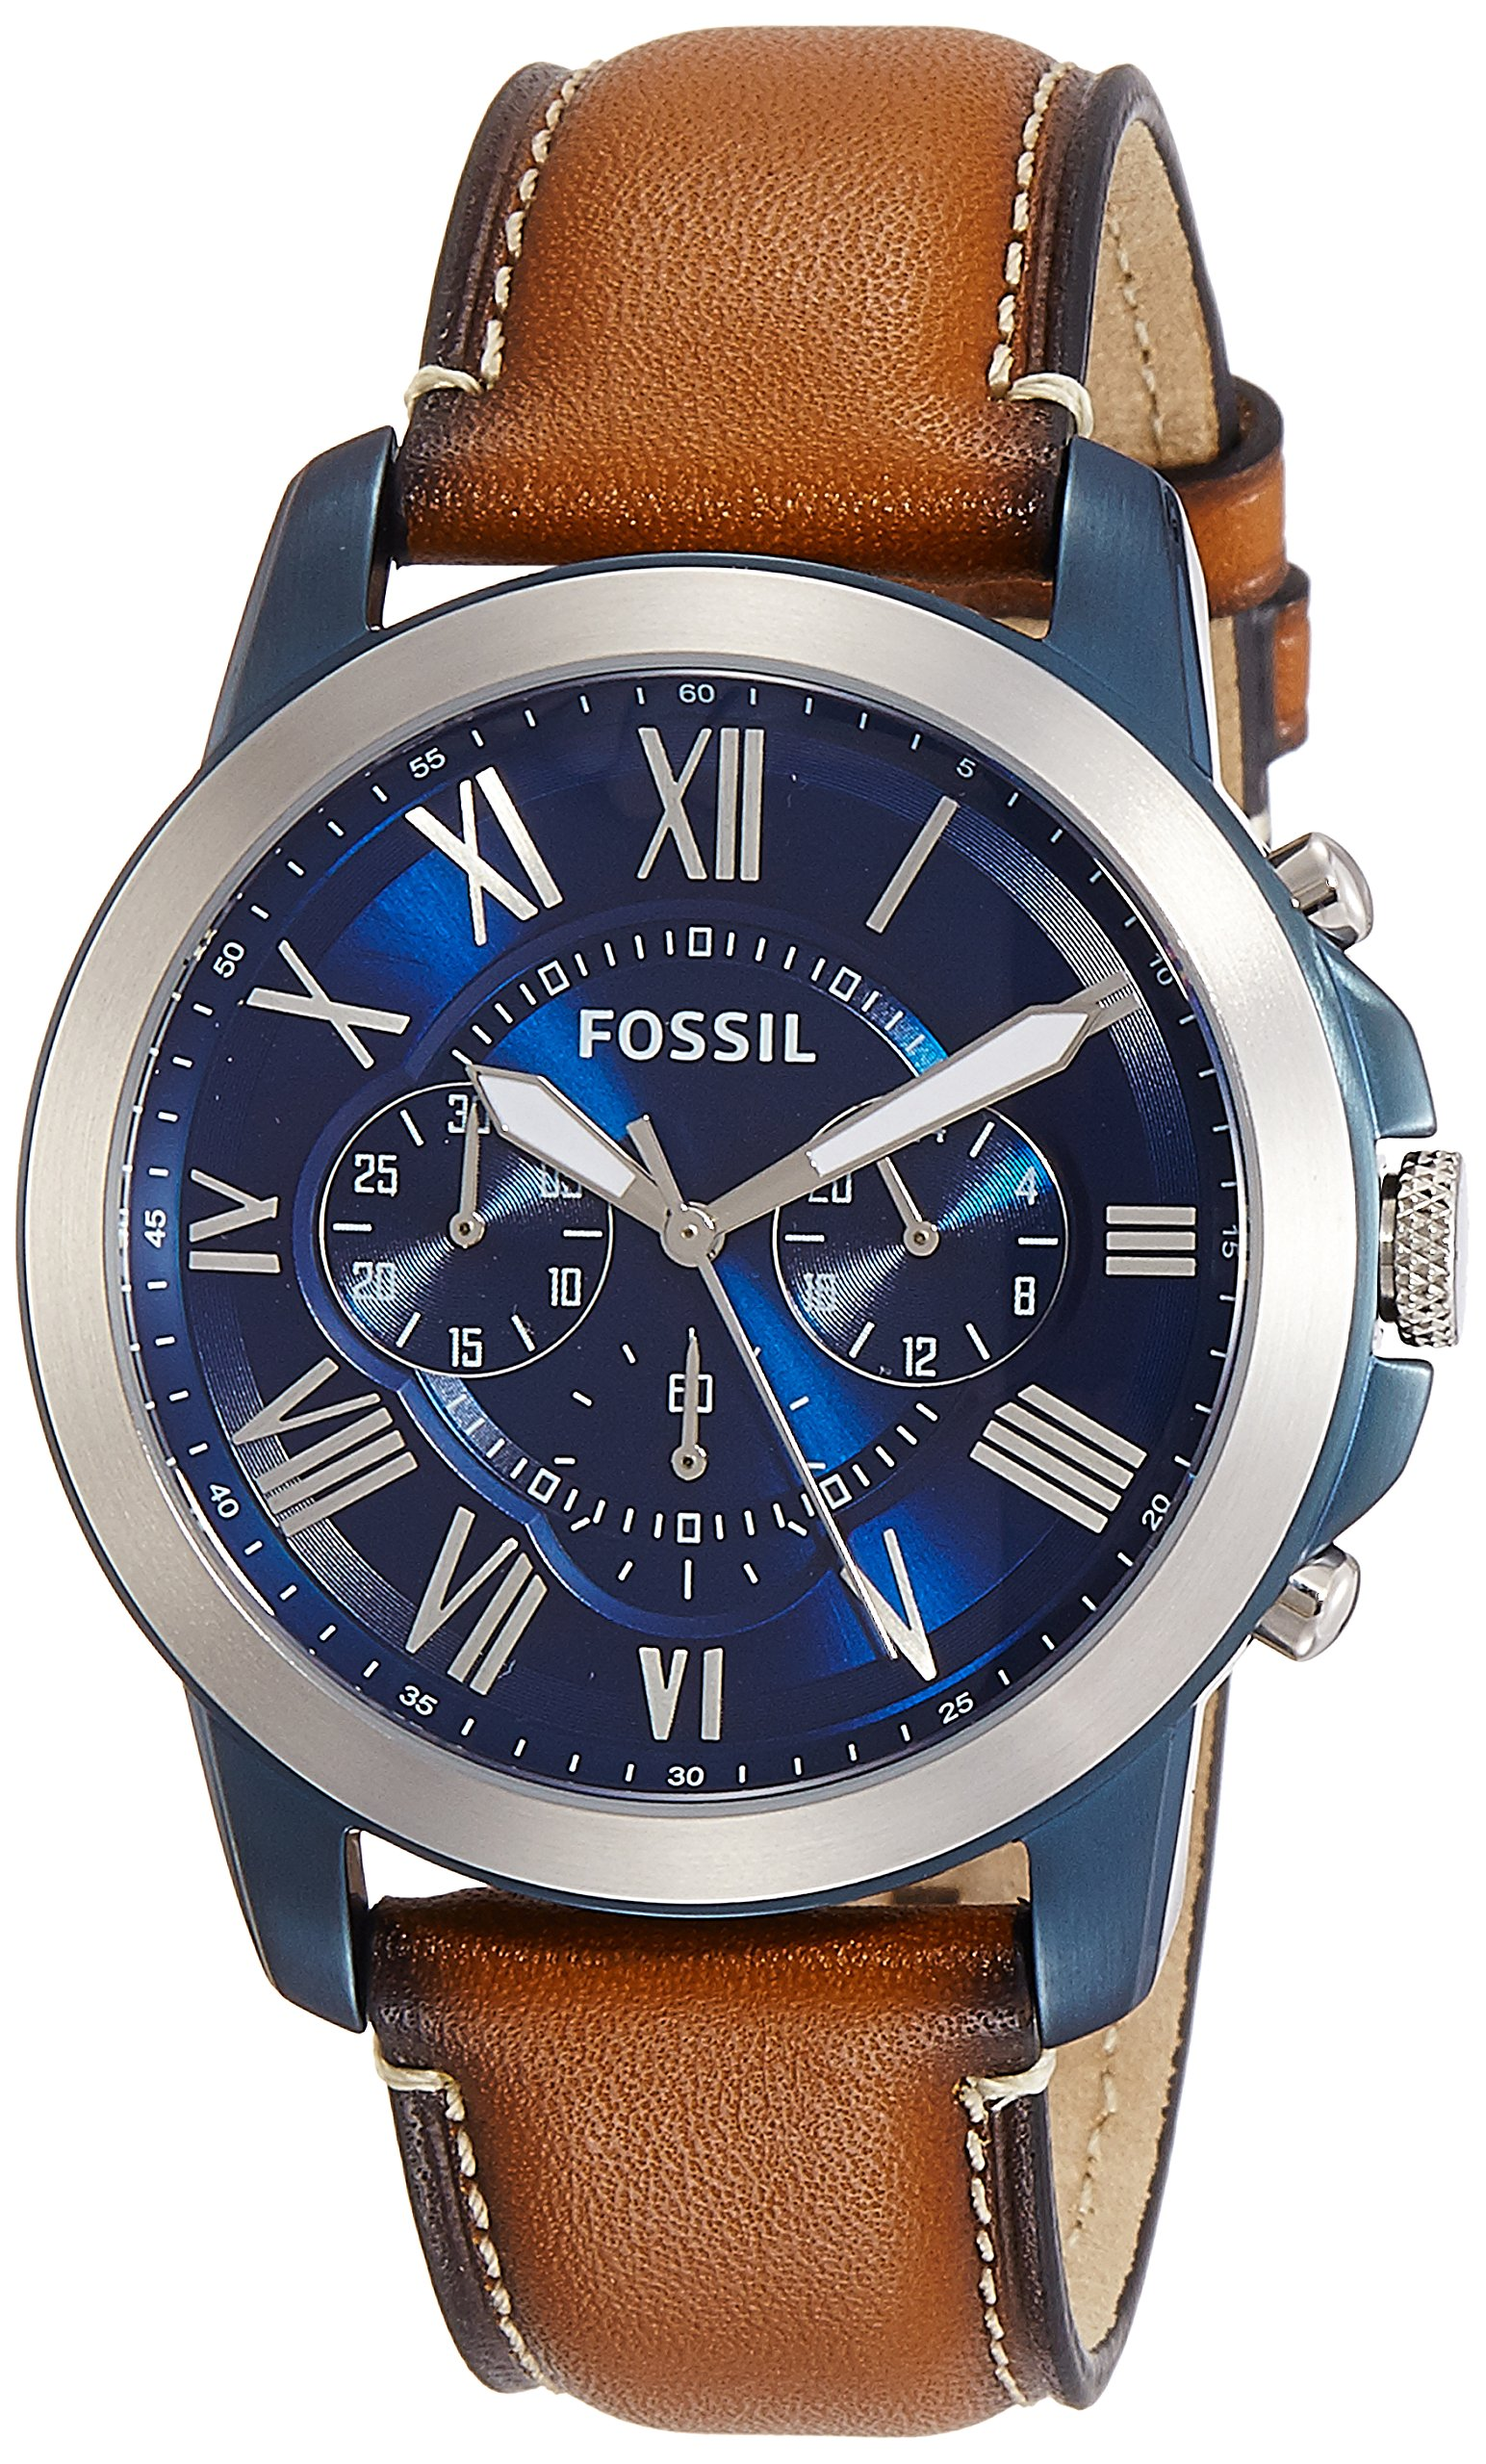 Fossil Men's Grant Quartz Stainless Steel and Leather Chronograph Watch, Color: Blue, Brown (Model: FS5151) by Fossil